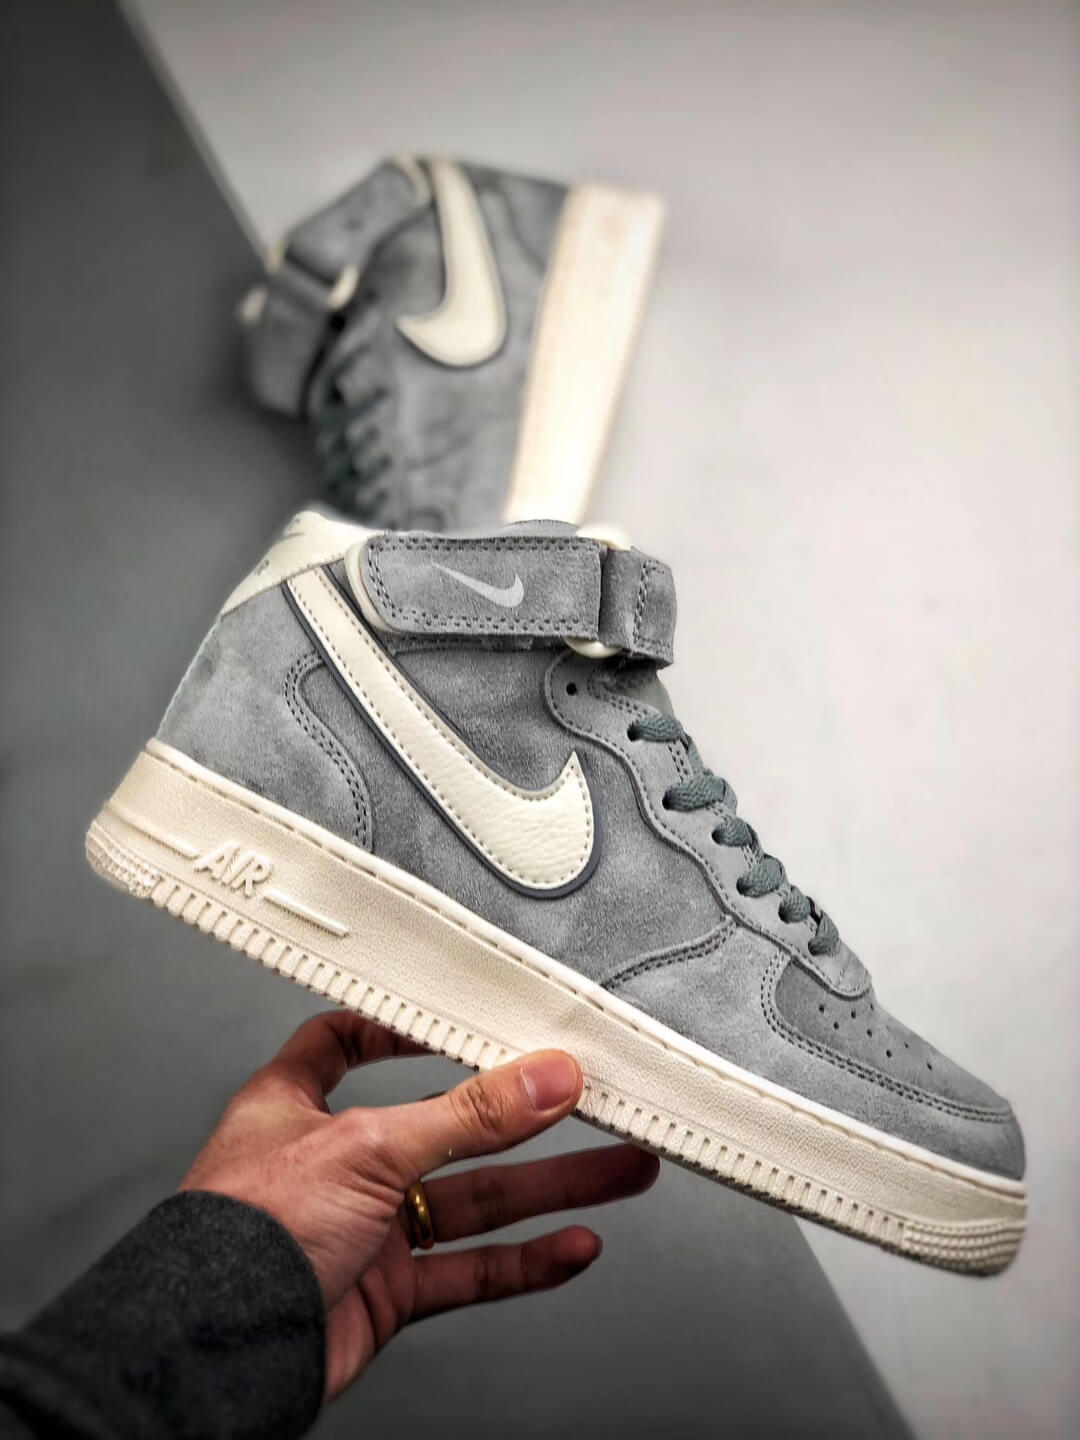 The Air Force 1 Mid 07 3M Reflective